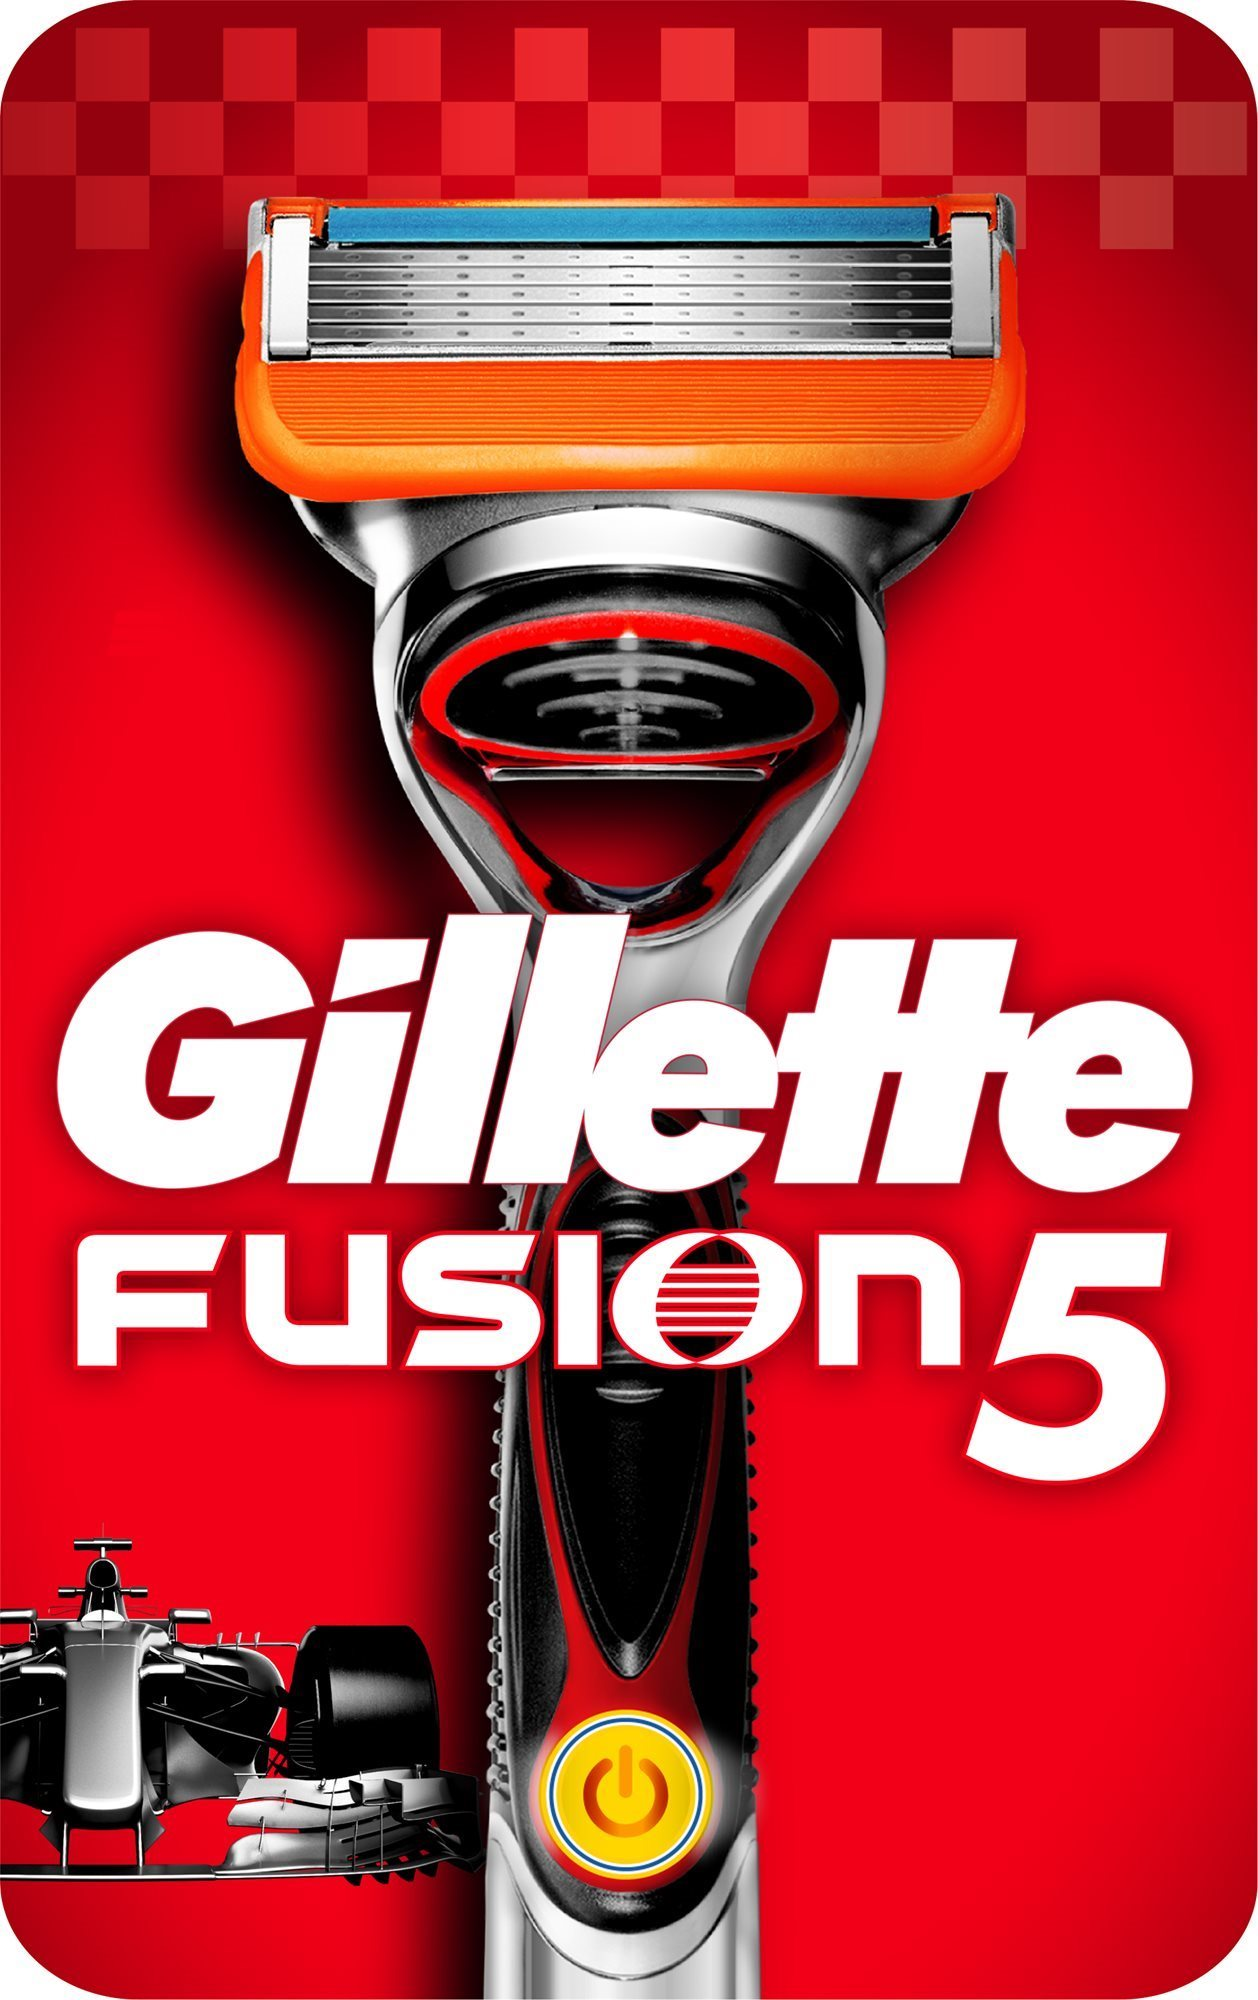 GILLETTE Fusion Power borotva fej + 1 db